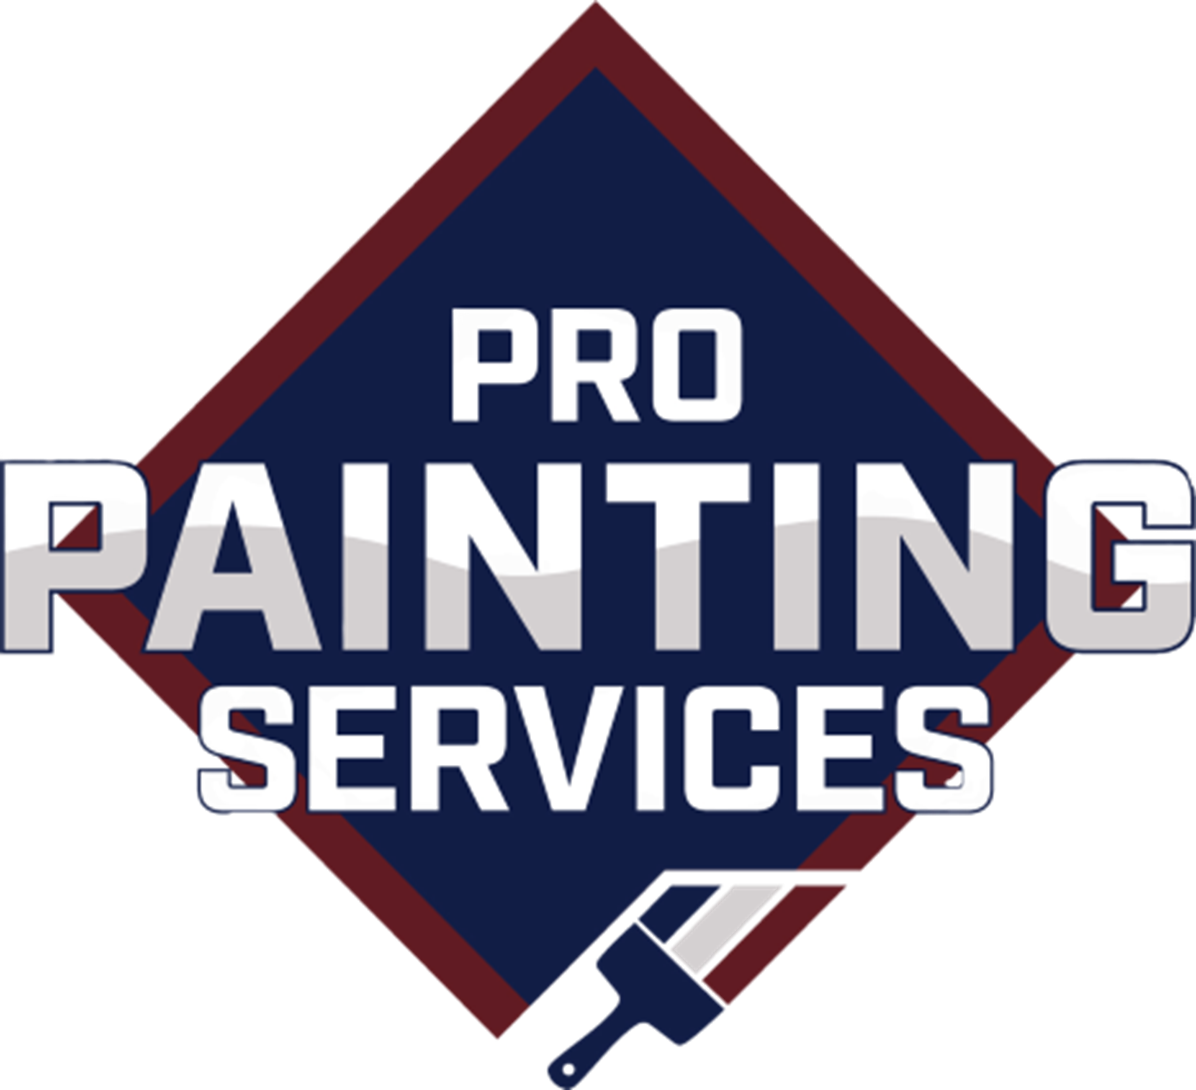 Pro Painting Services Logo